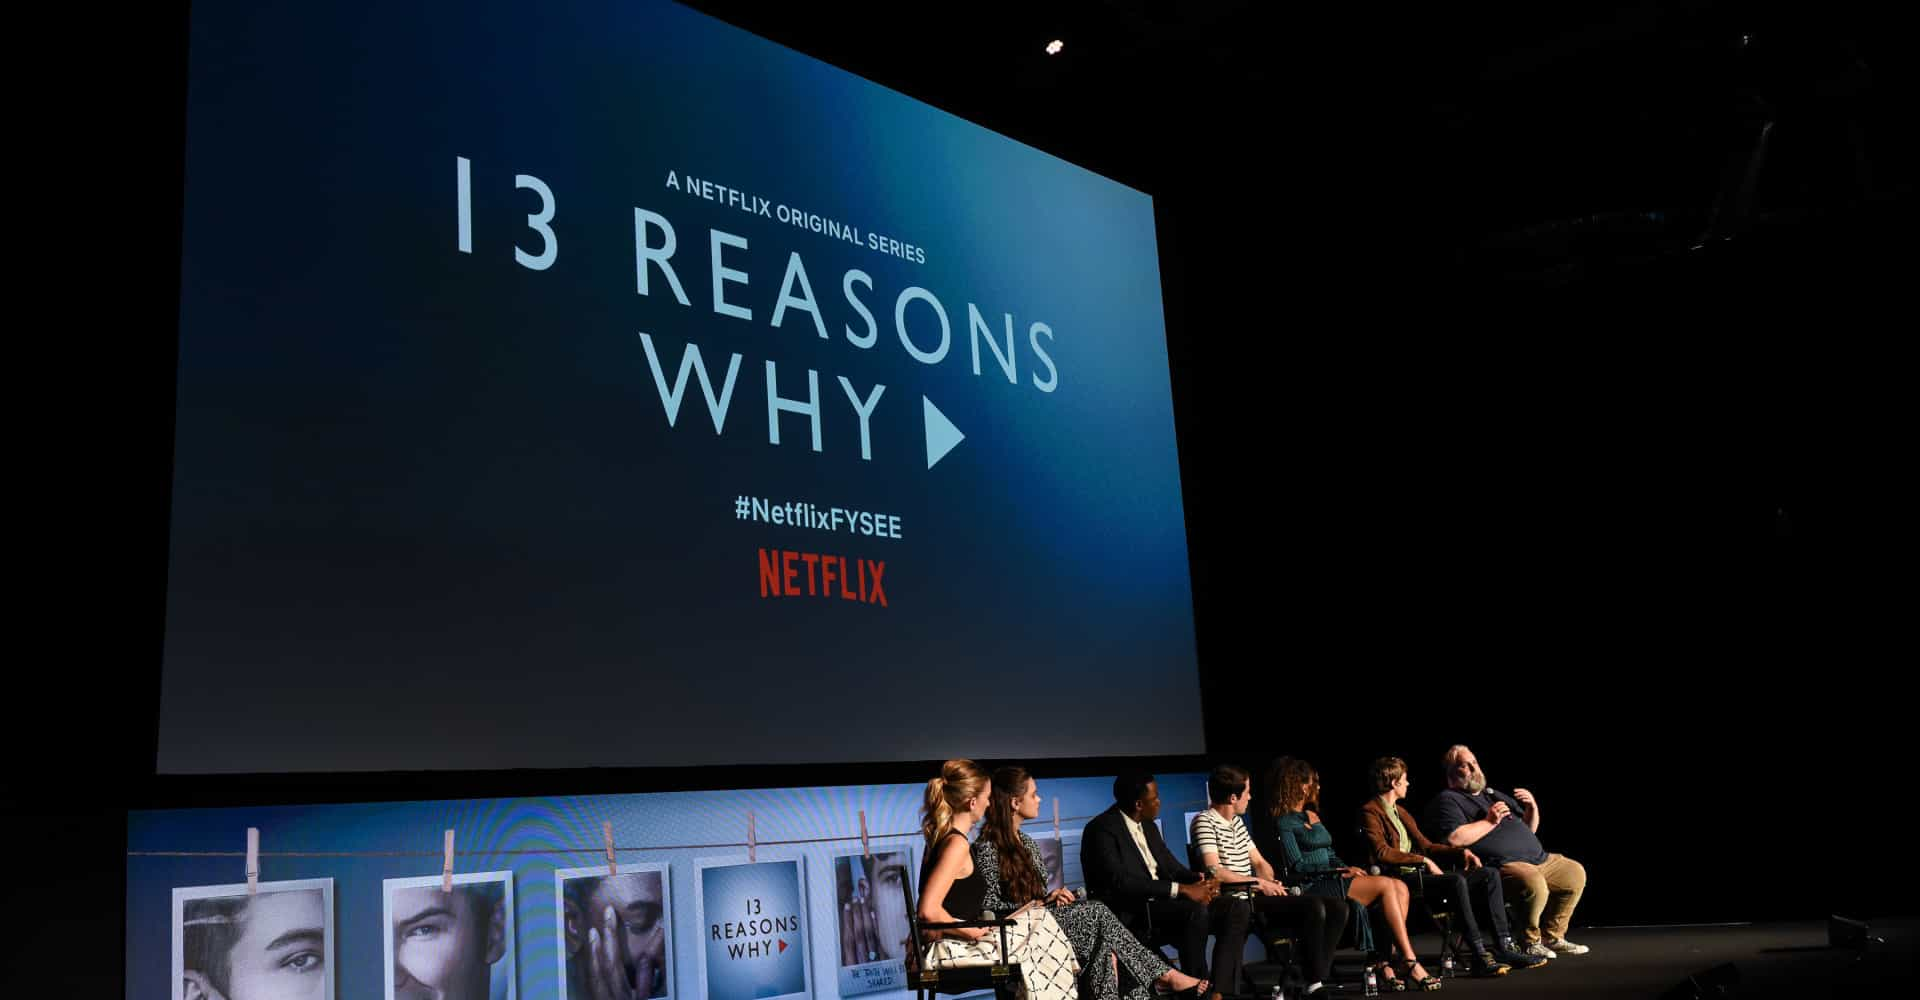 '13 Reasons Why' has been renewed for a third season